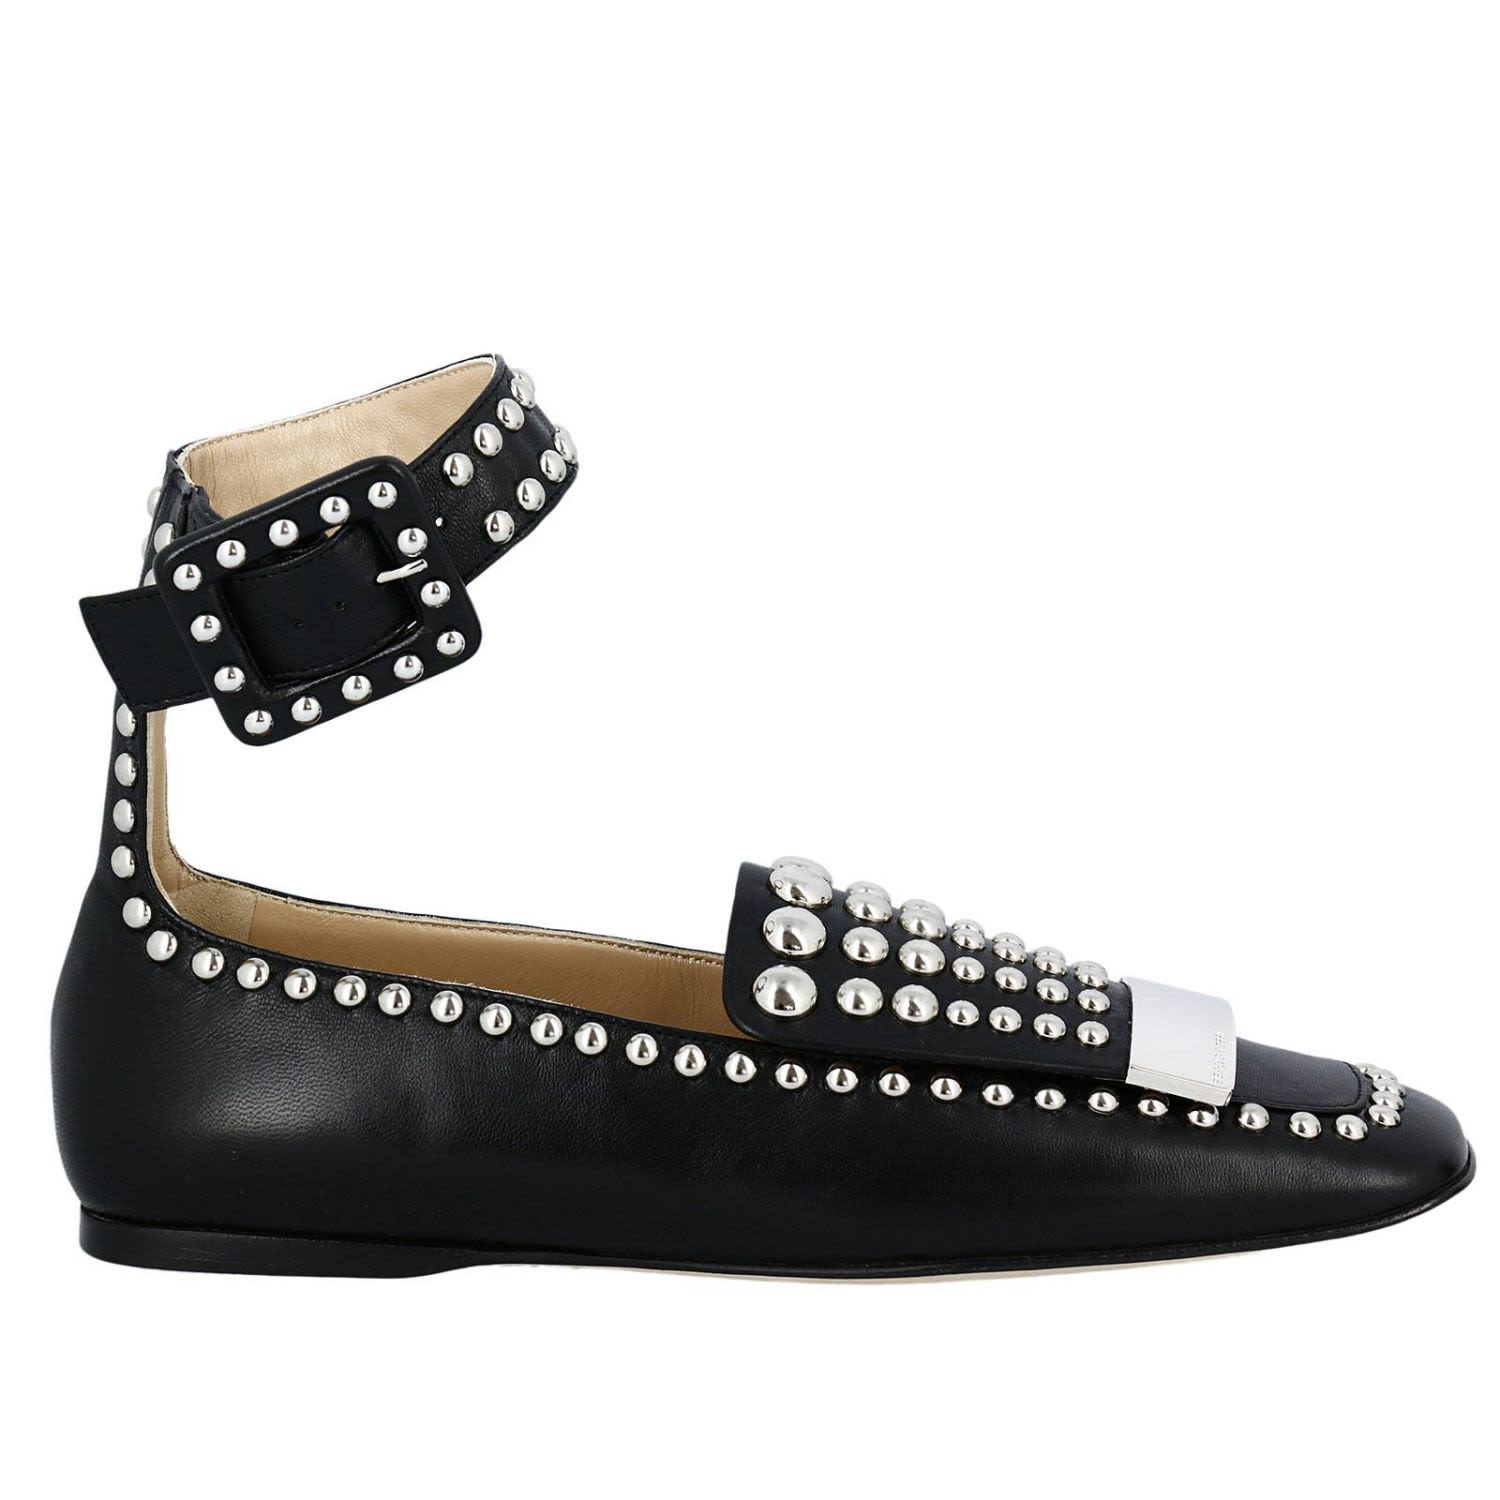 sergio rossi 10mm metal plaque studded leather flats in black modesens. Black Bedroom Furniture Sets. Home Design Ideas